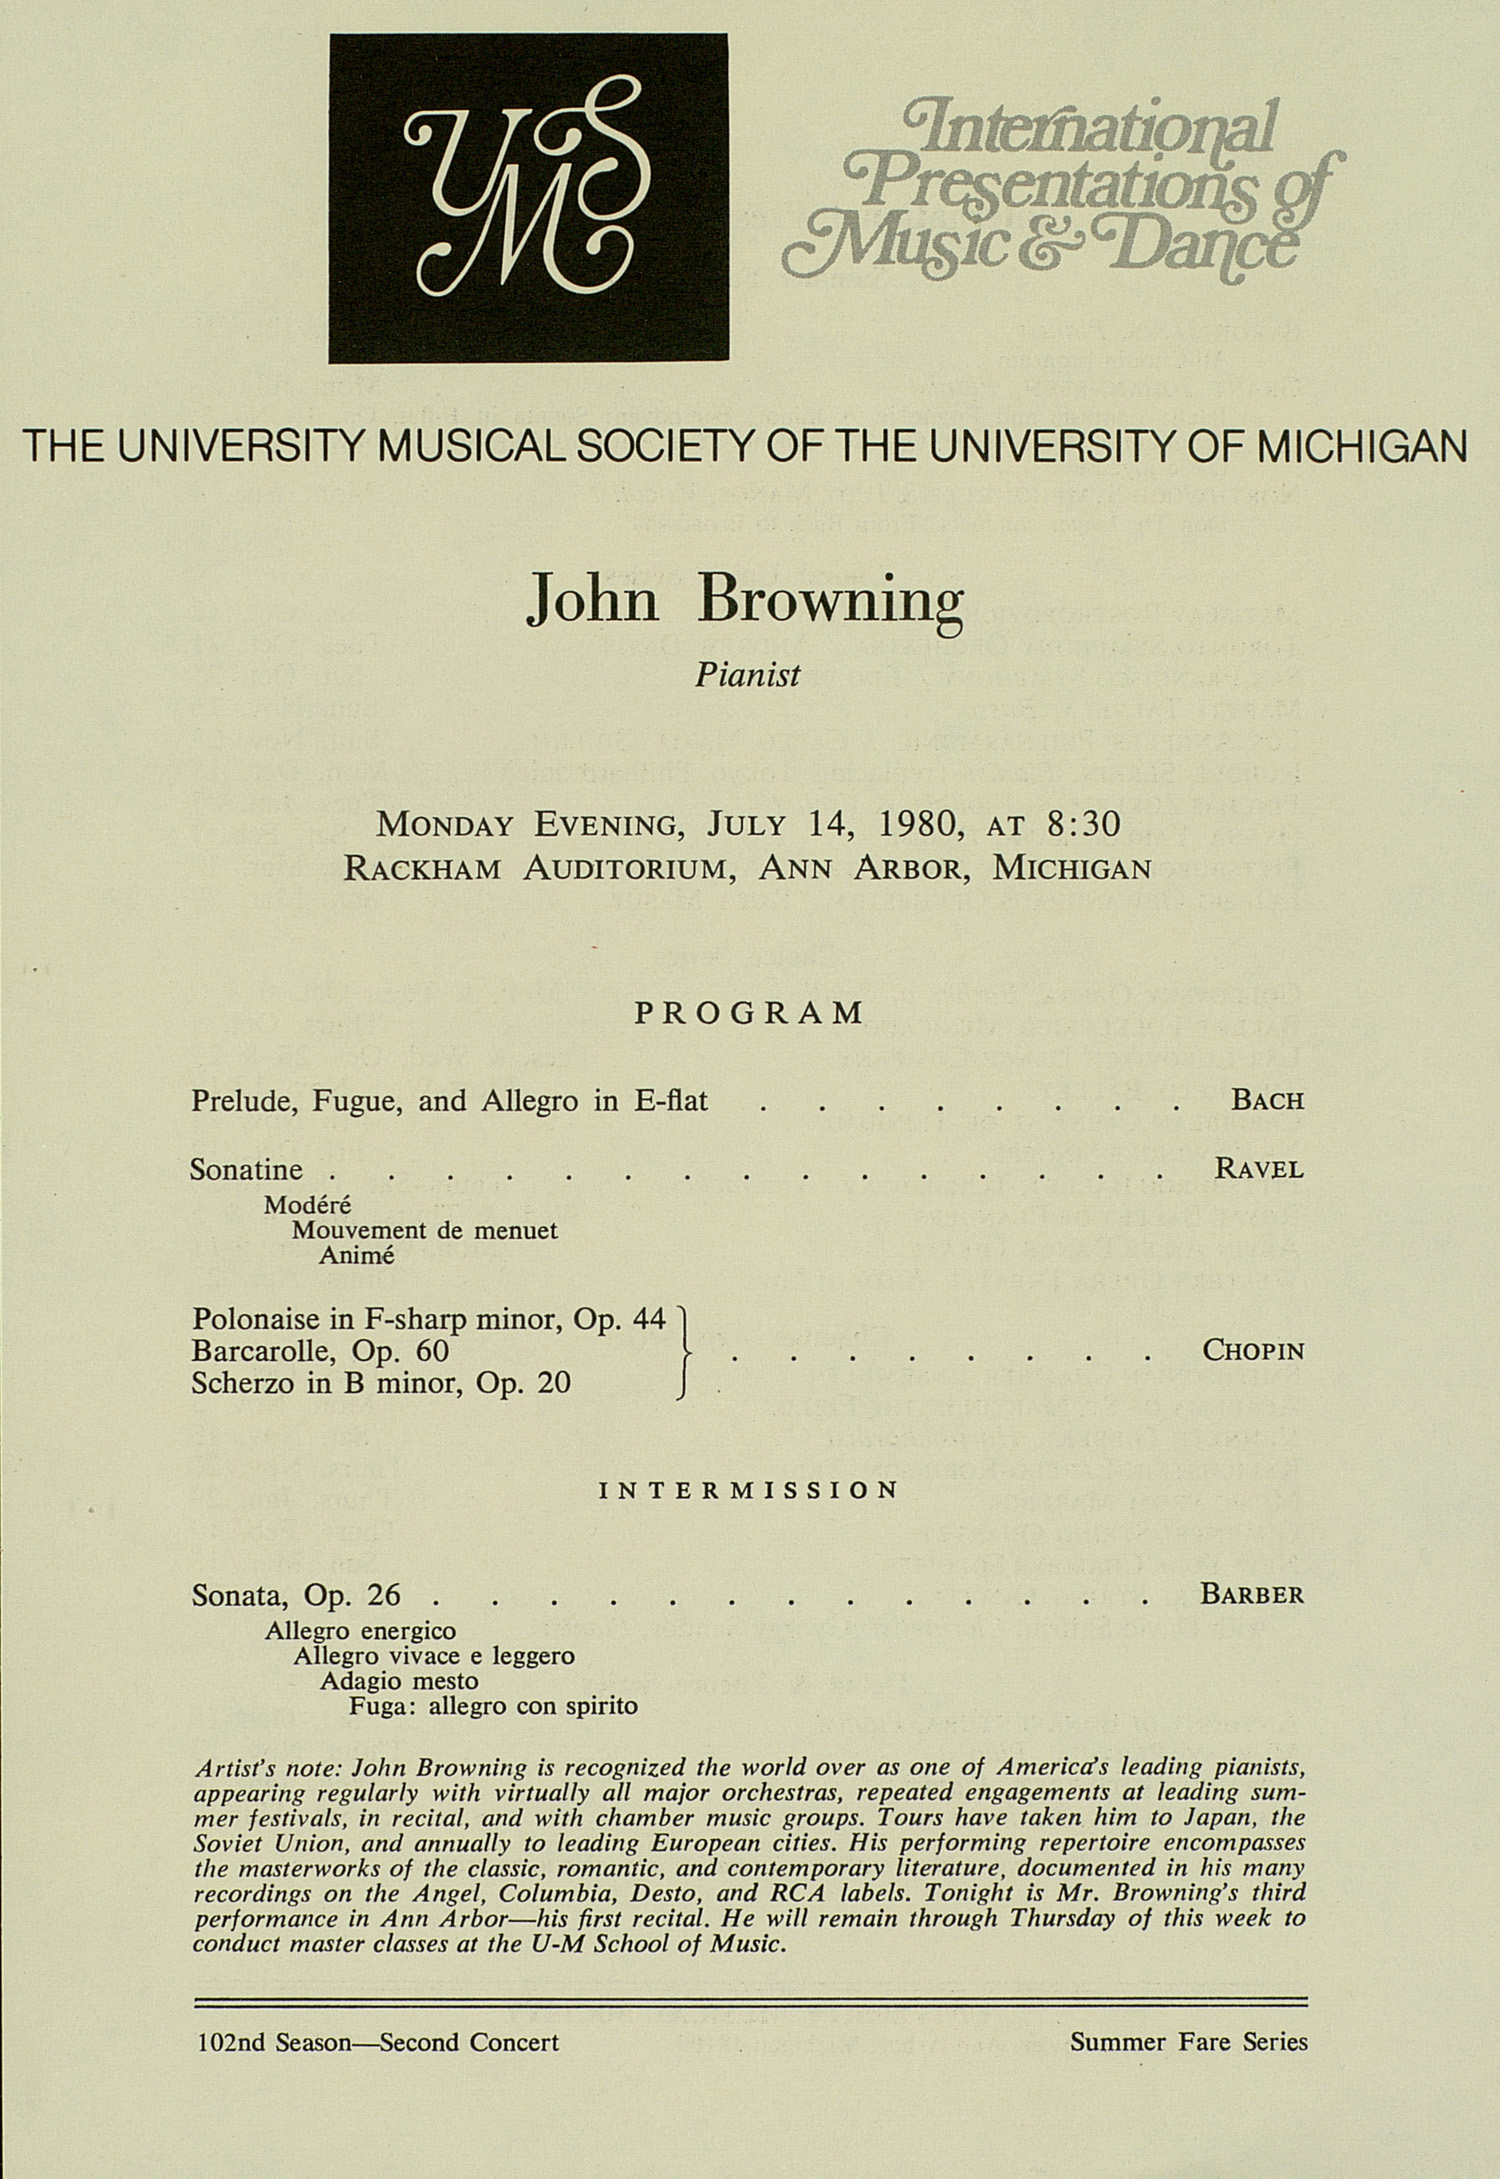 UMS Concert Program, July 14, 1980: International Presentations Of Music & Dance --  image